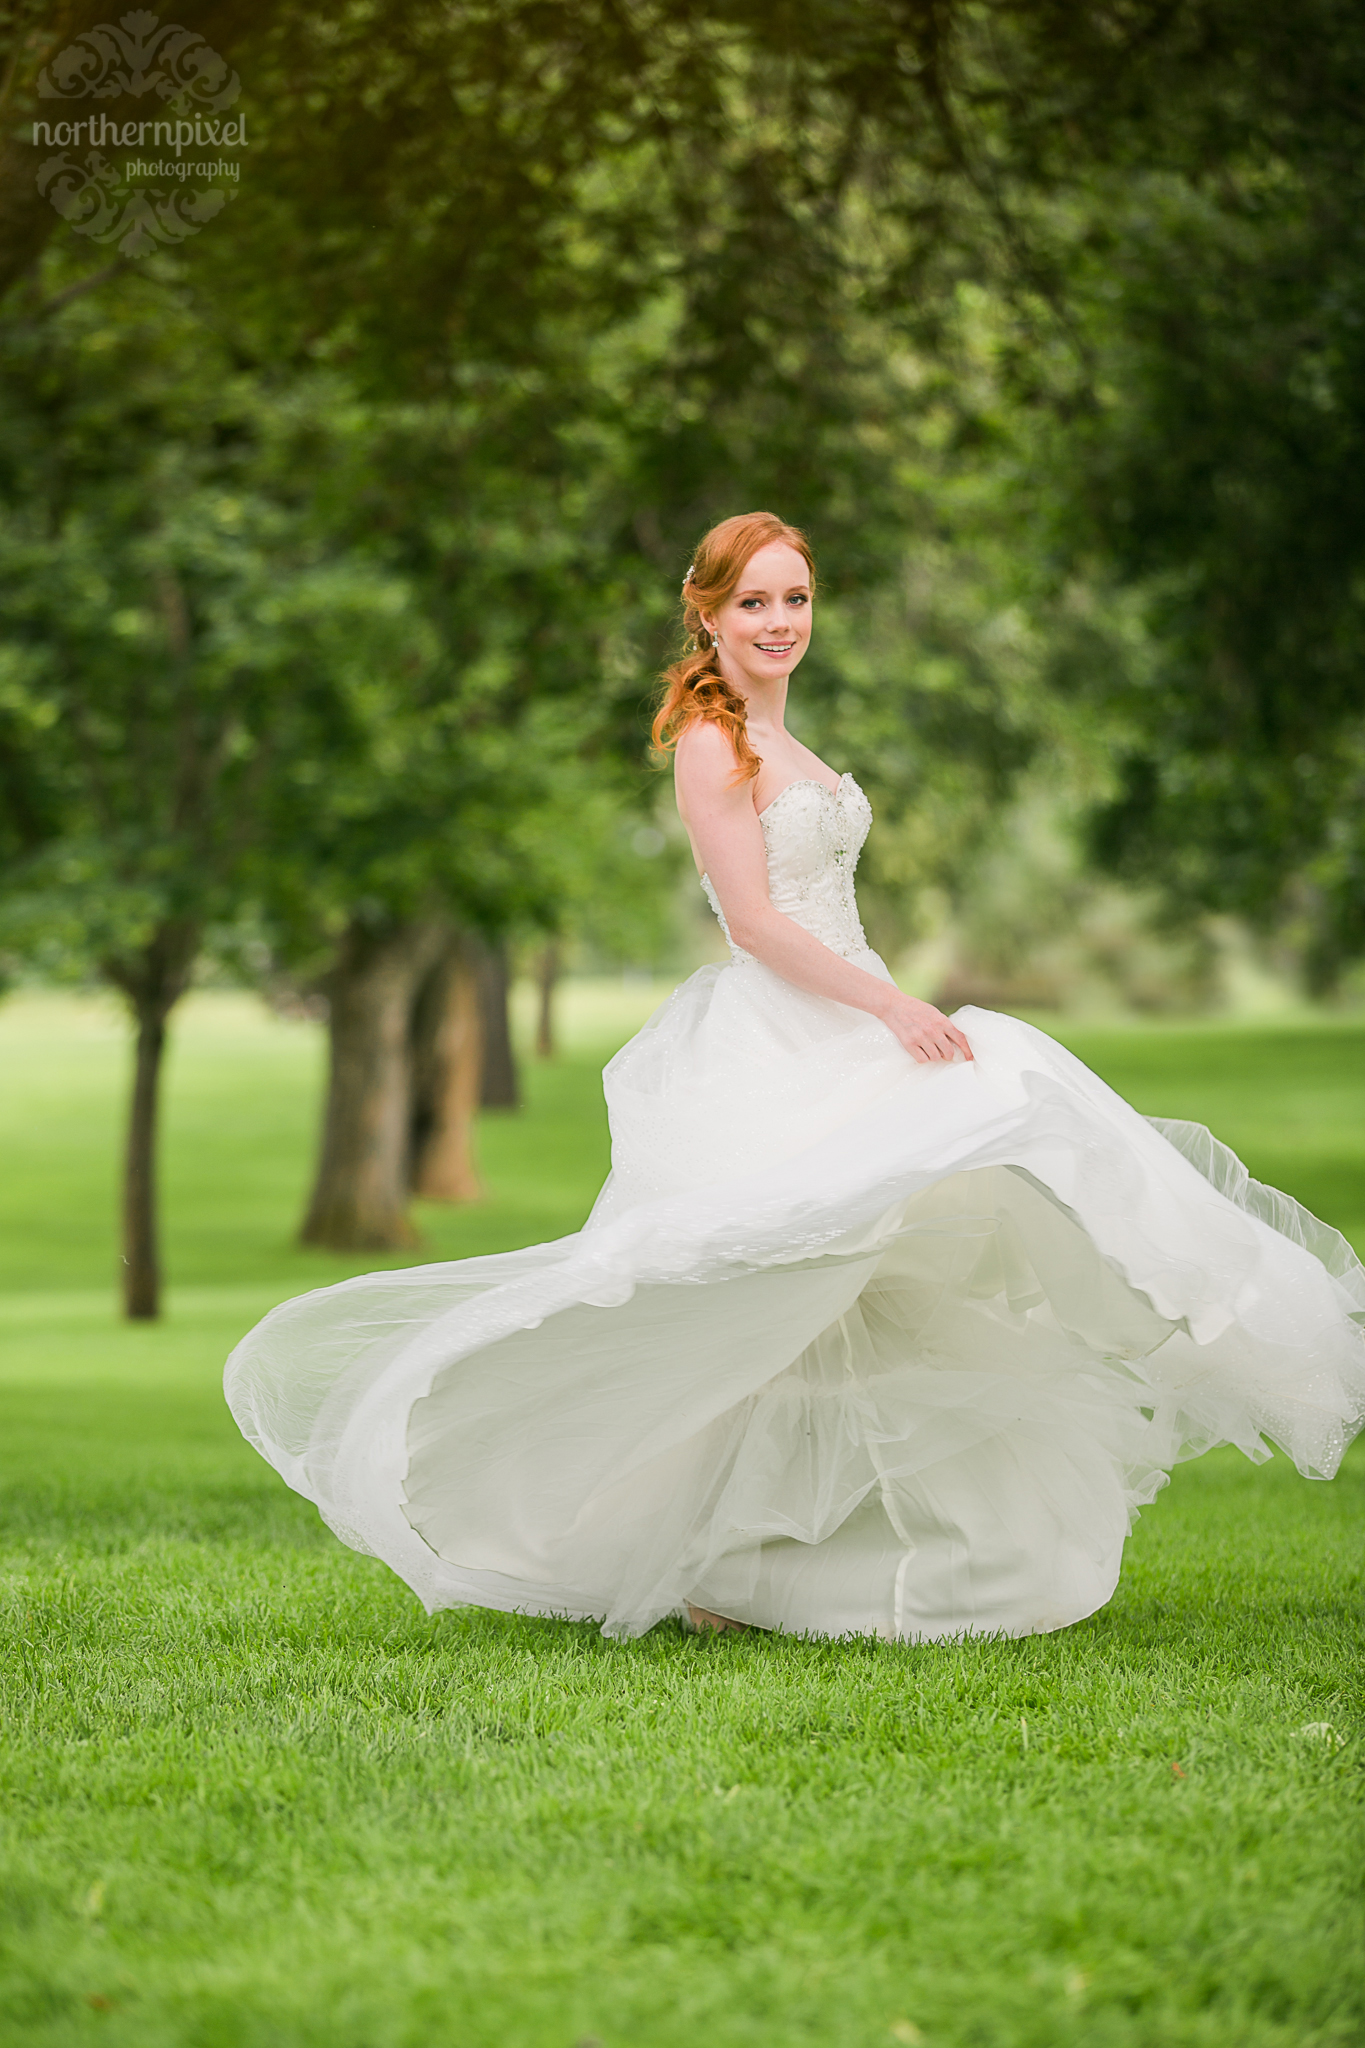 Bridal Gown - the Gallery Bridal Boutique in Prince George BC